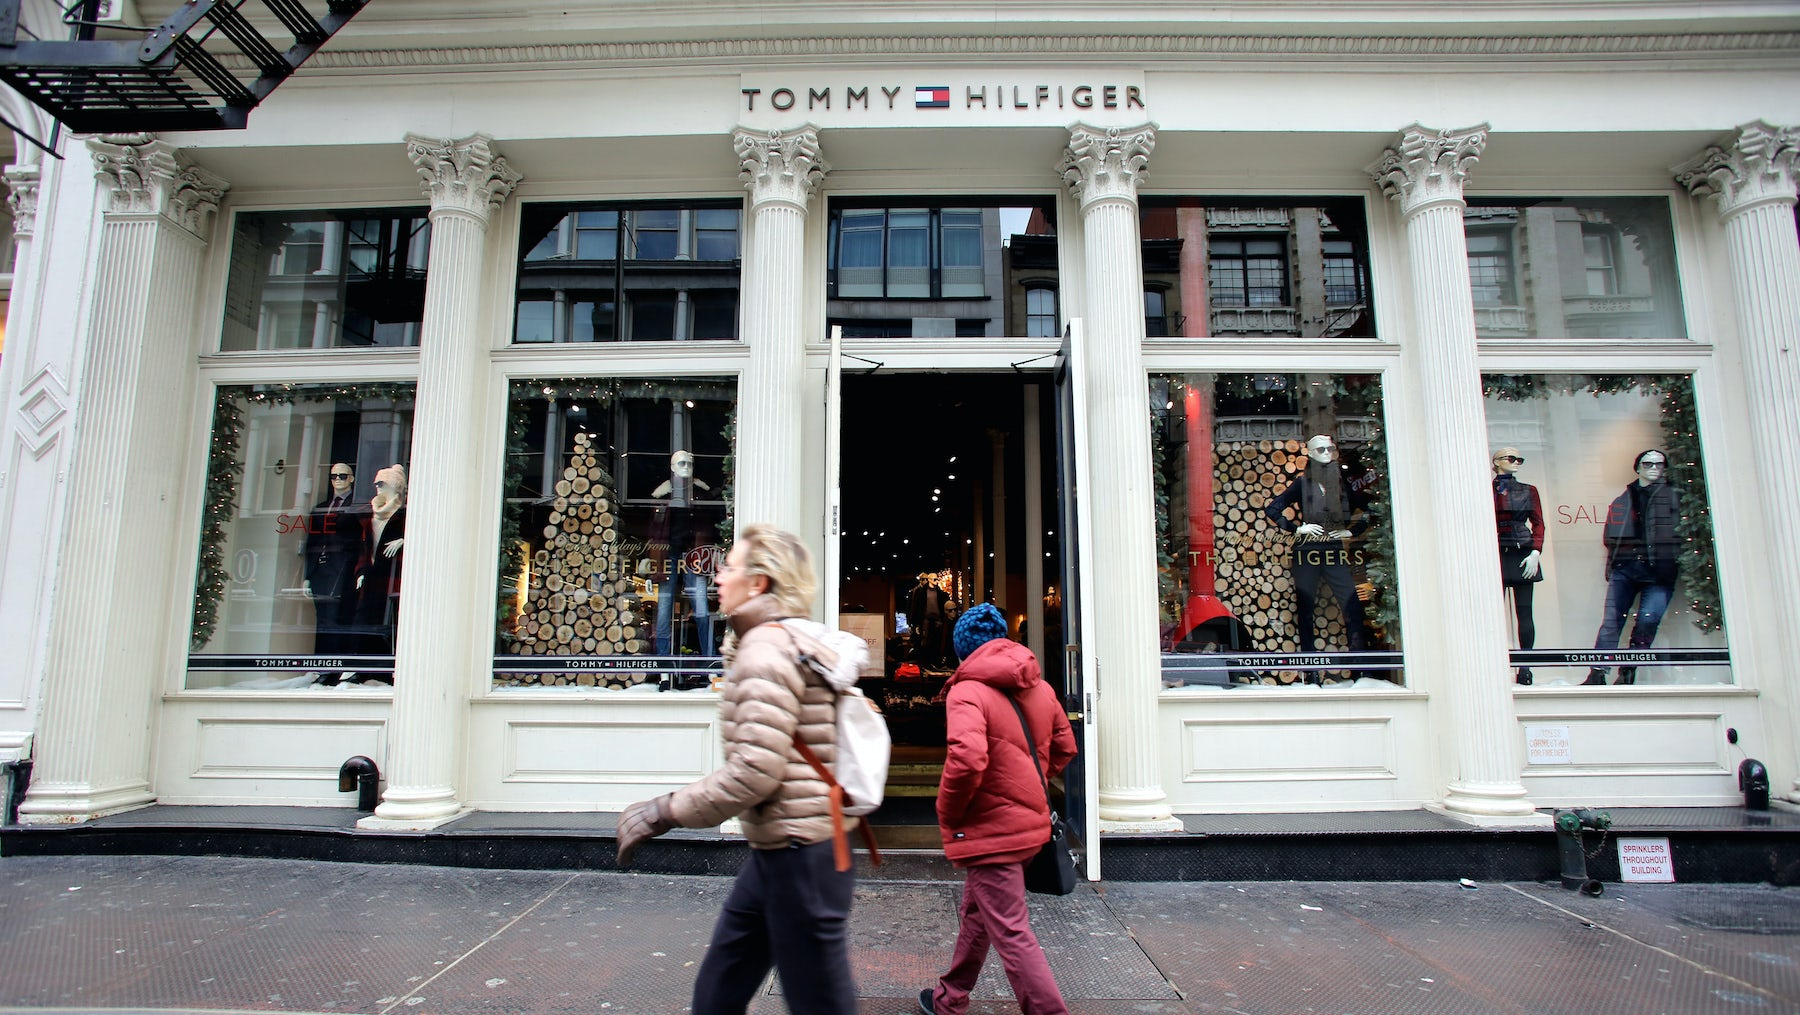 Tommy Hilfiger Creates Fashion Line for People With Disabilities